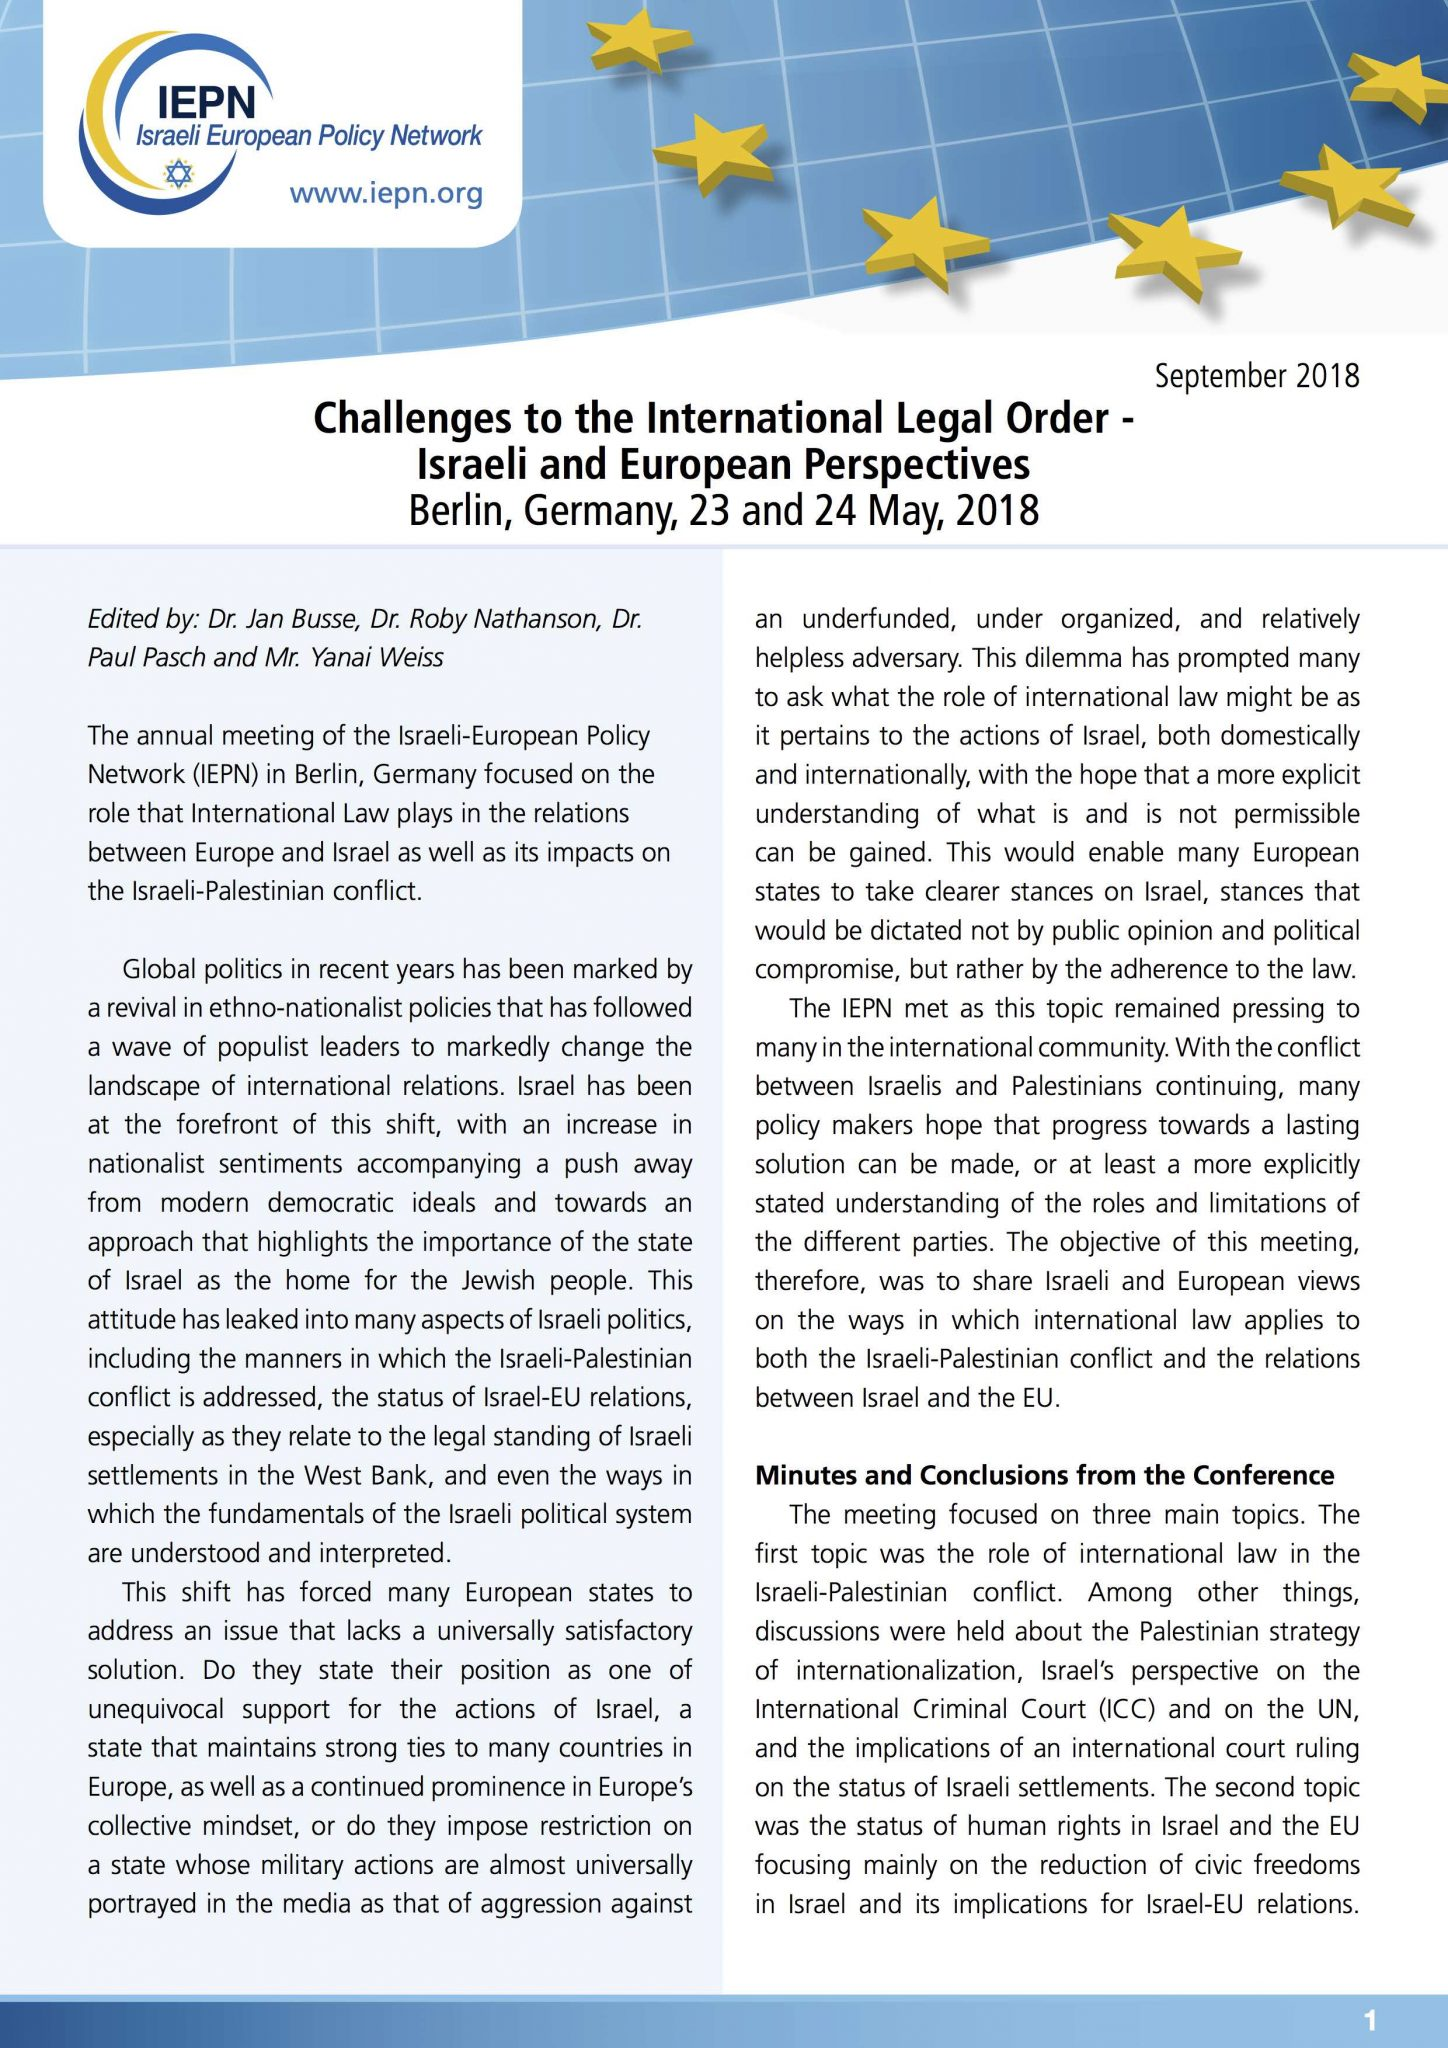 Challenges to/from the International (Legal) Order: Israeli